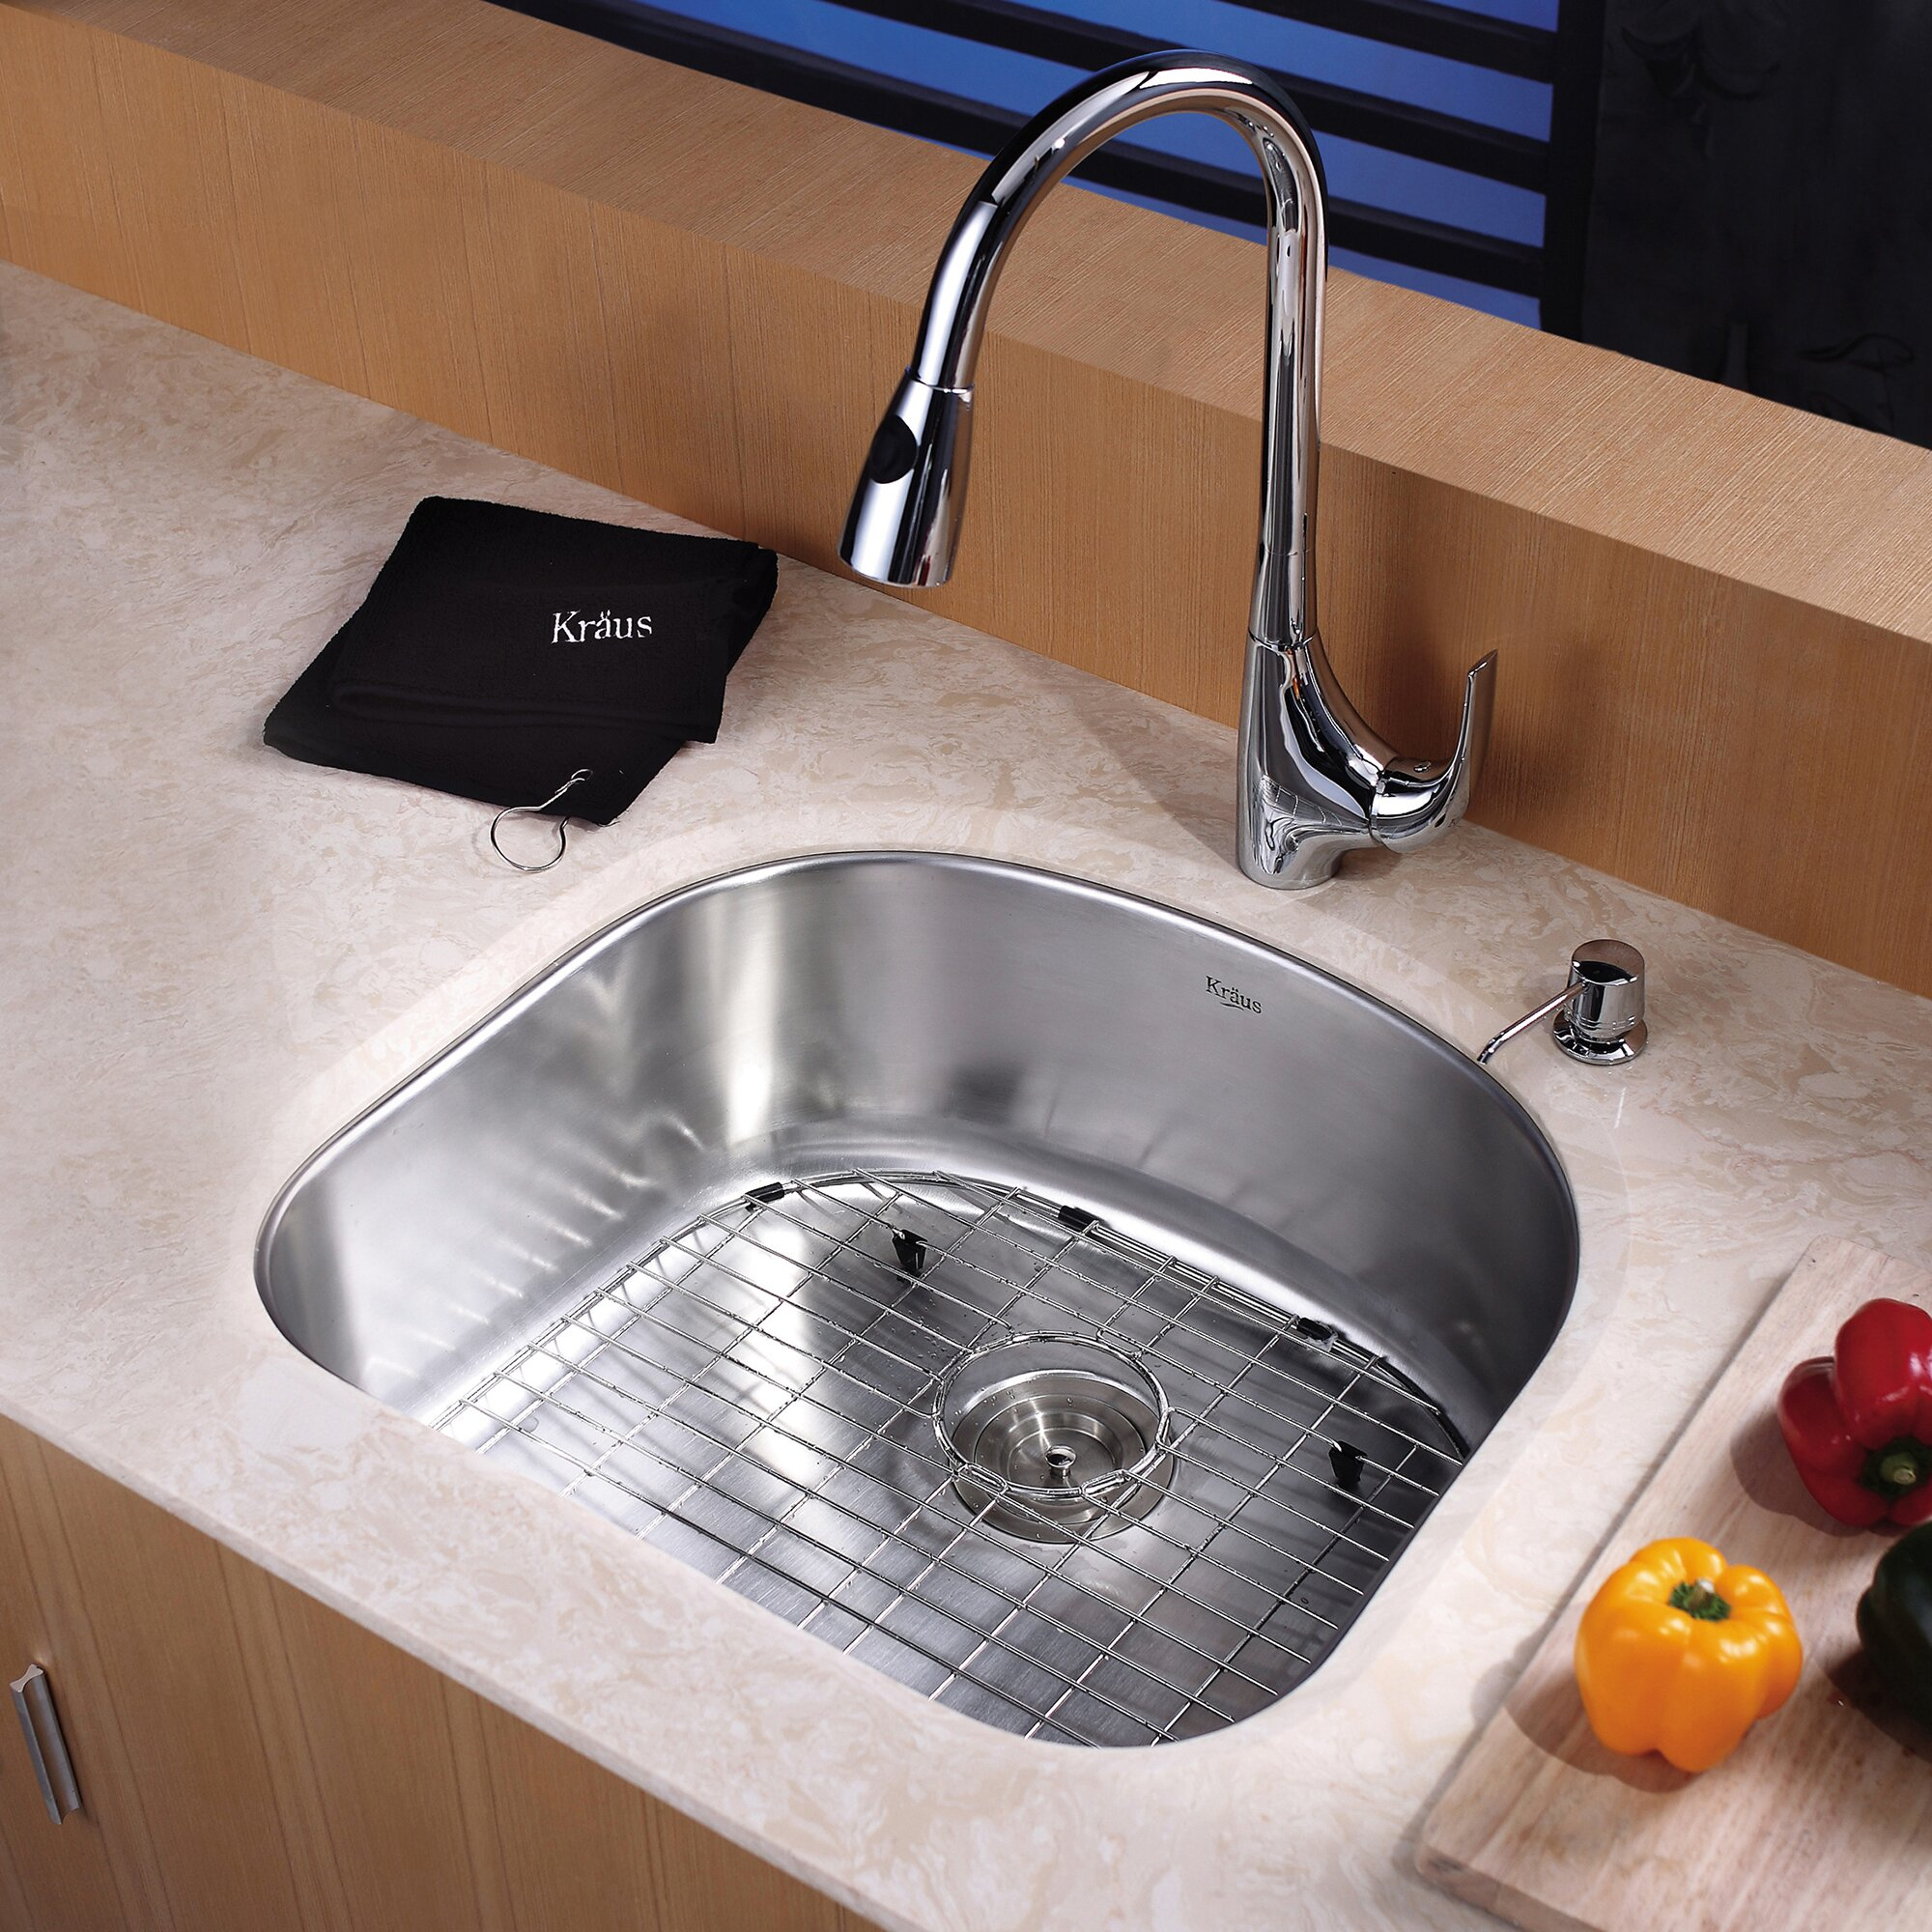 kraus kitchen sinks kraus 23 25 quot x 20 88 quot undermount single bowl kitchen sink 3612